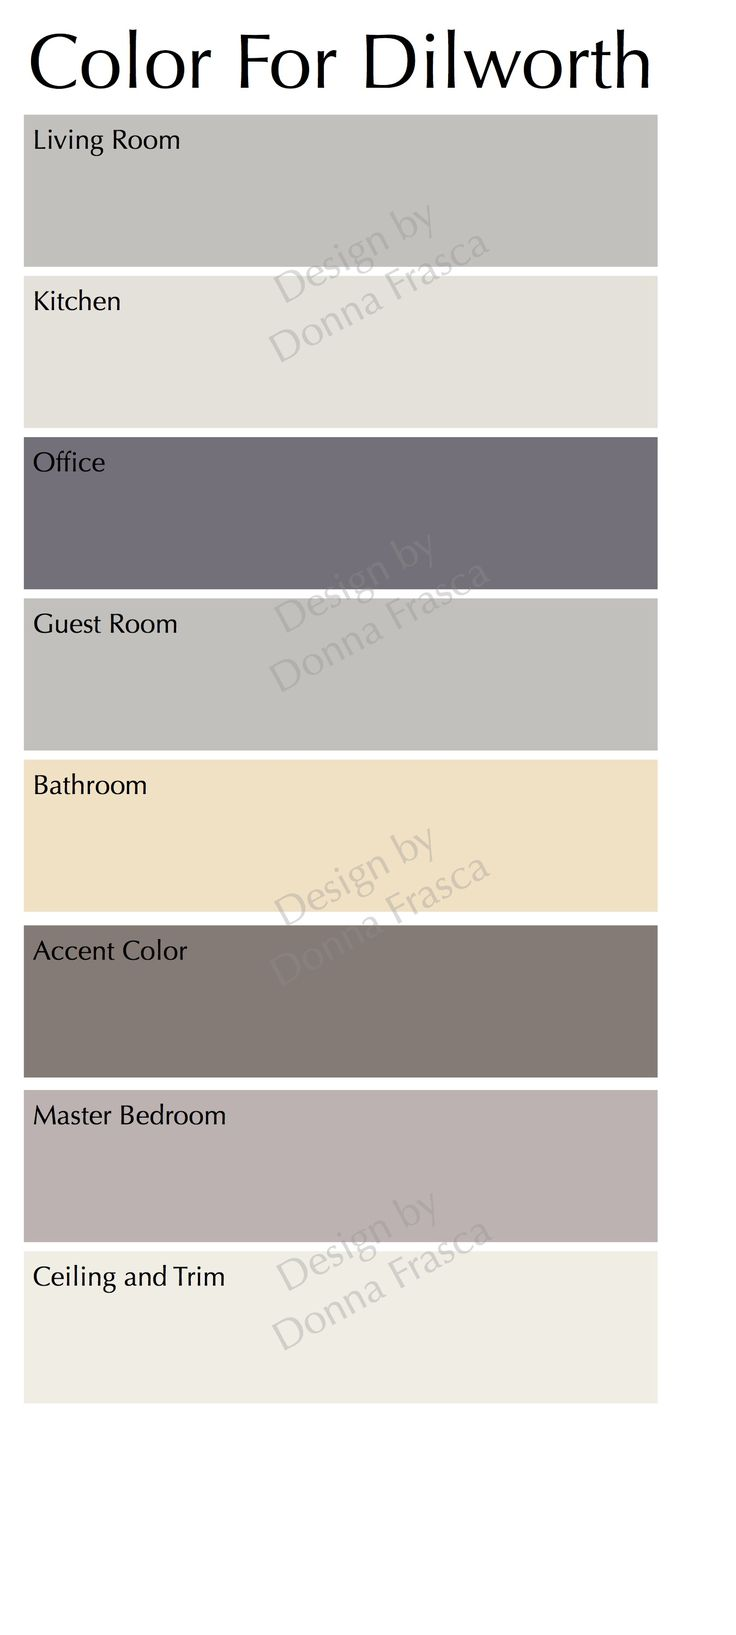 Details about hassam garden painting ceramic bathroom tile murals 2 - Choosing Contemporary Color For A Bungalow In Dilworth Charlotte